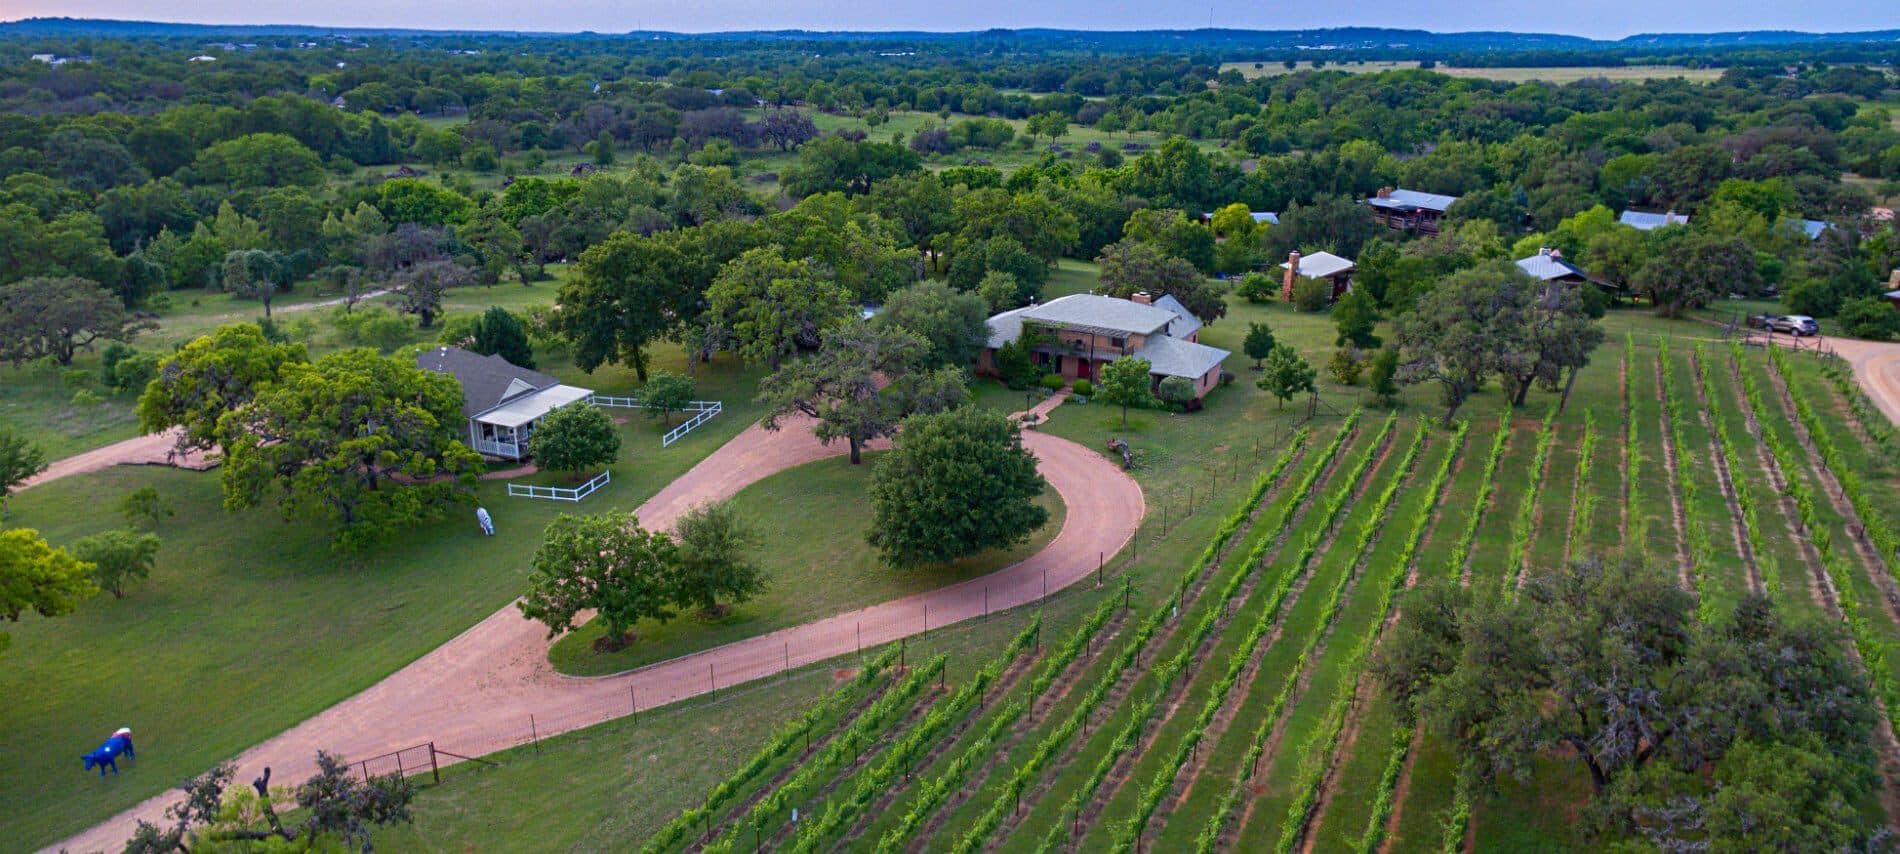 Large panoramic overhead view of vineyards and houses in rolling green hills.